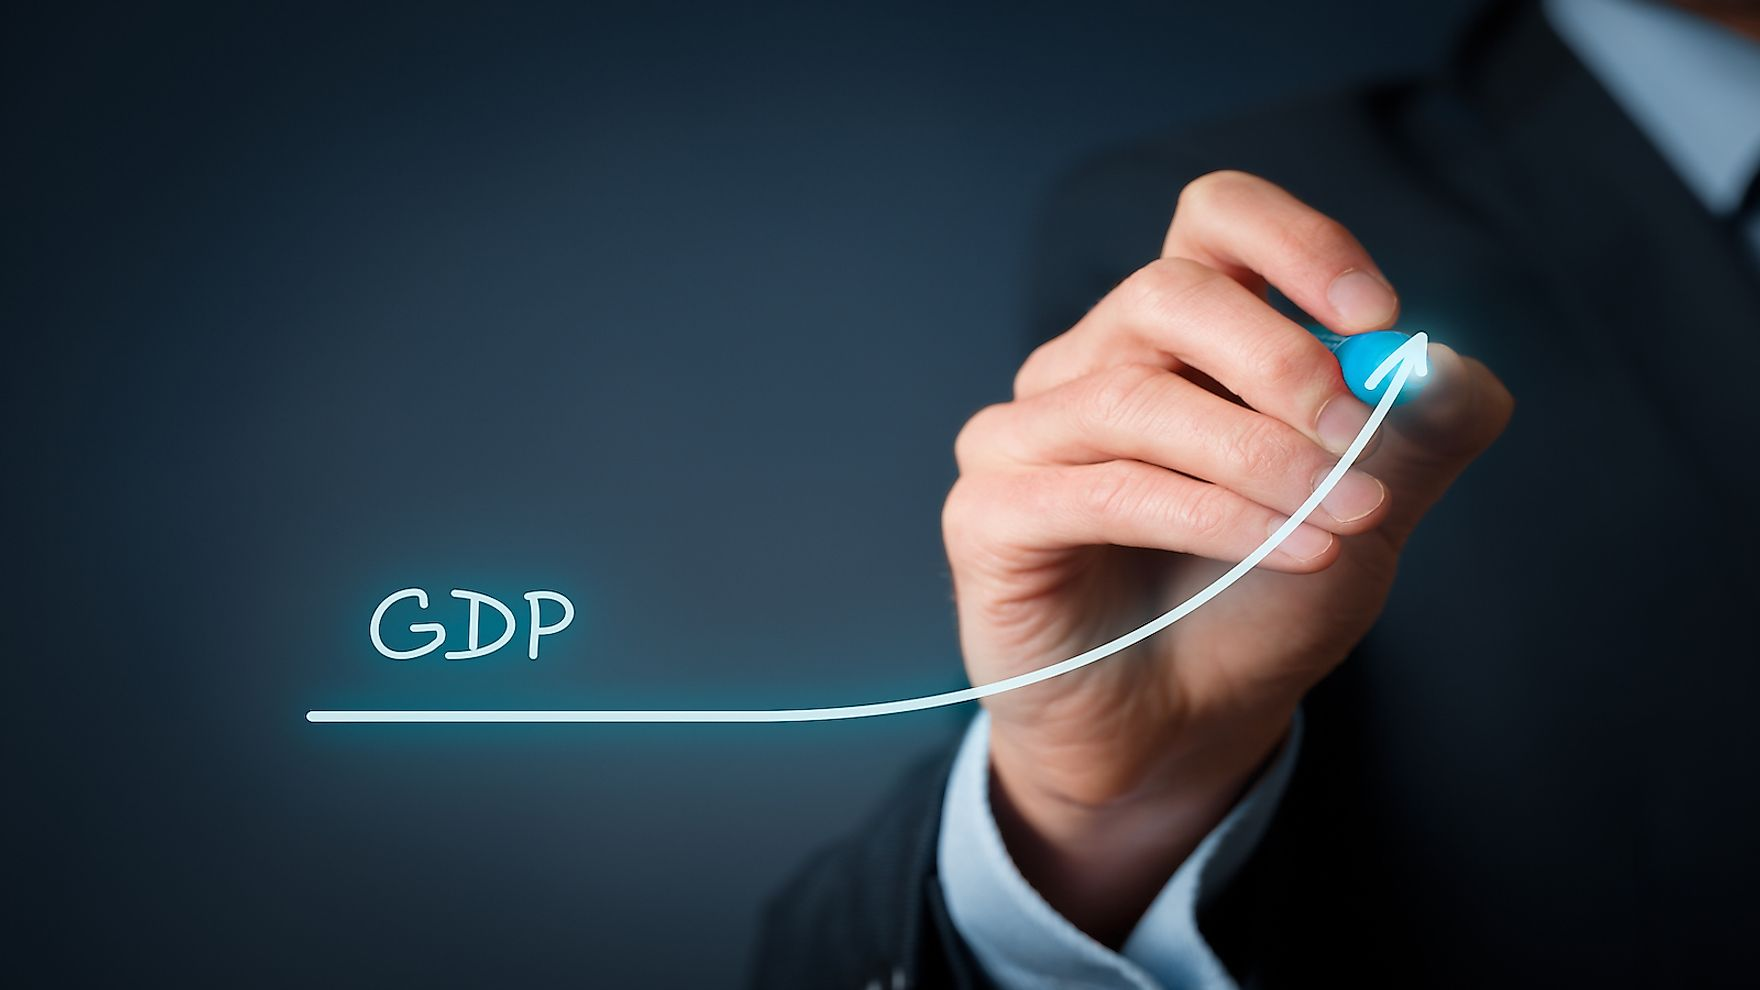 GDP helps measure the health of a state's economy.